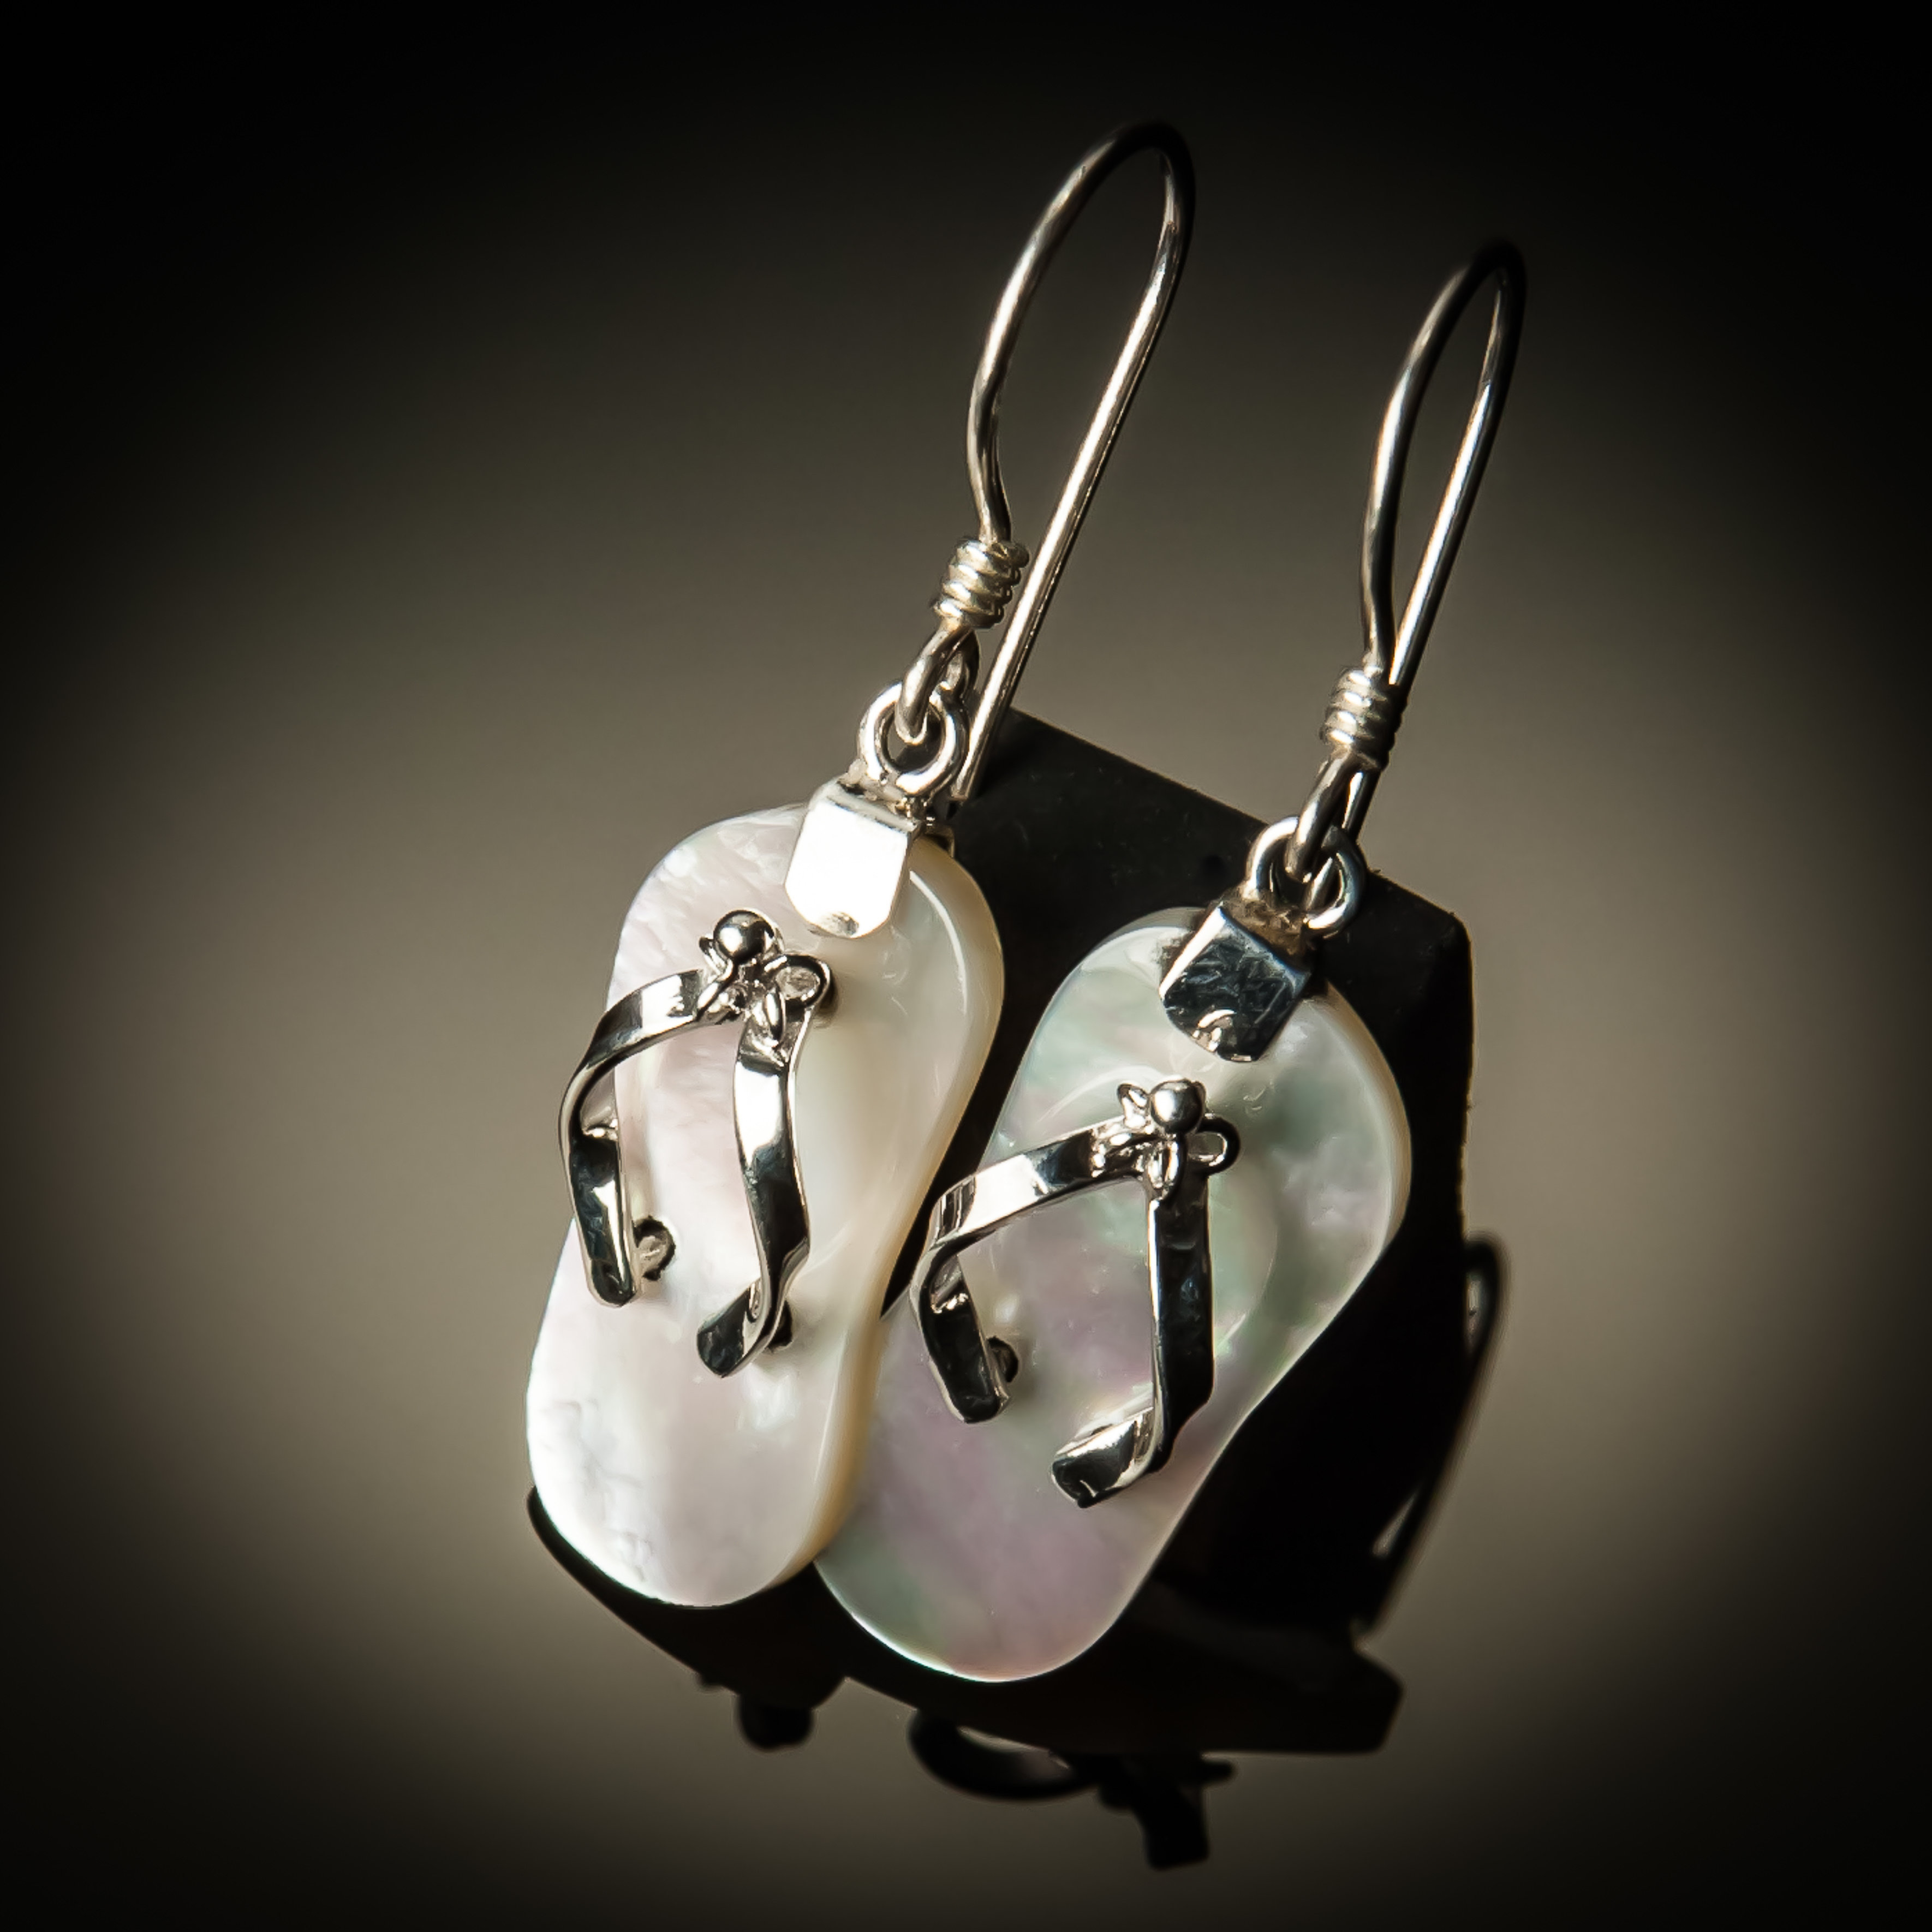 Mother of Pearl Flip Flop Earrings ER-09074-White MOP